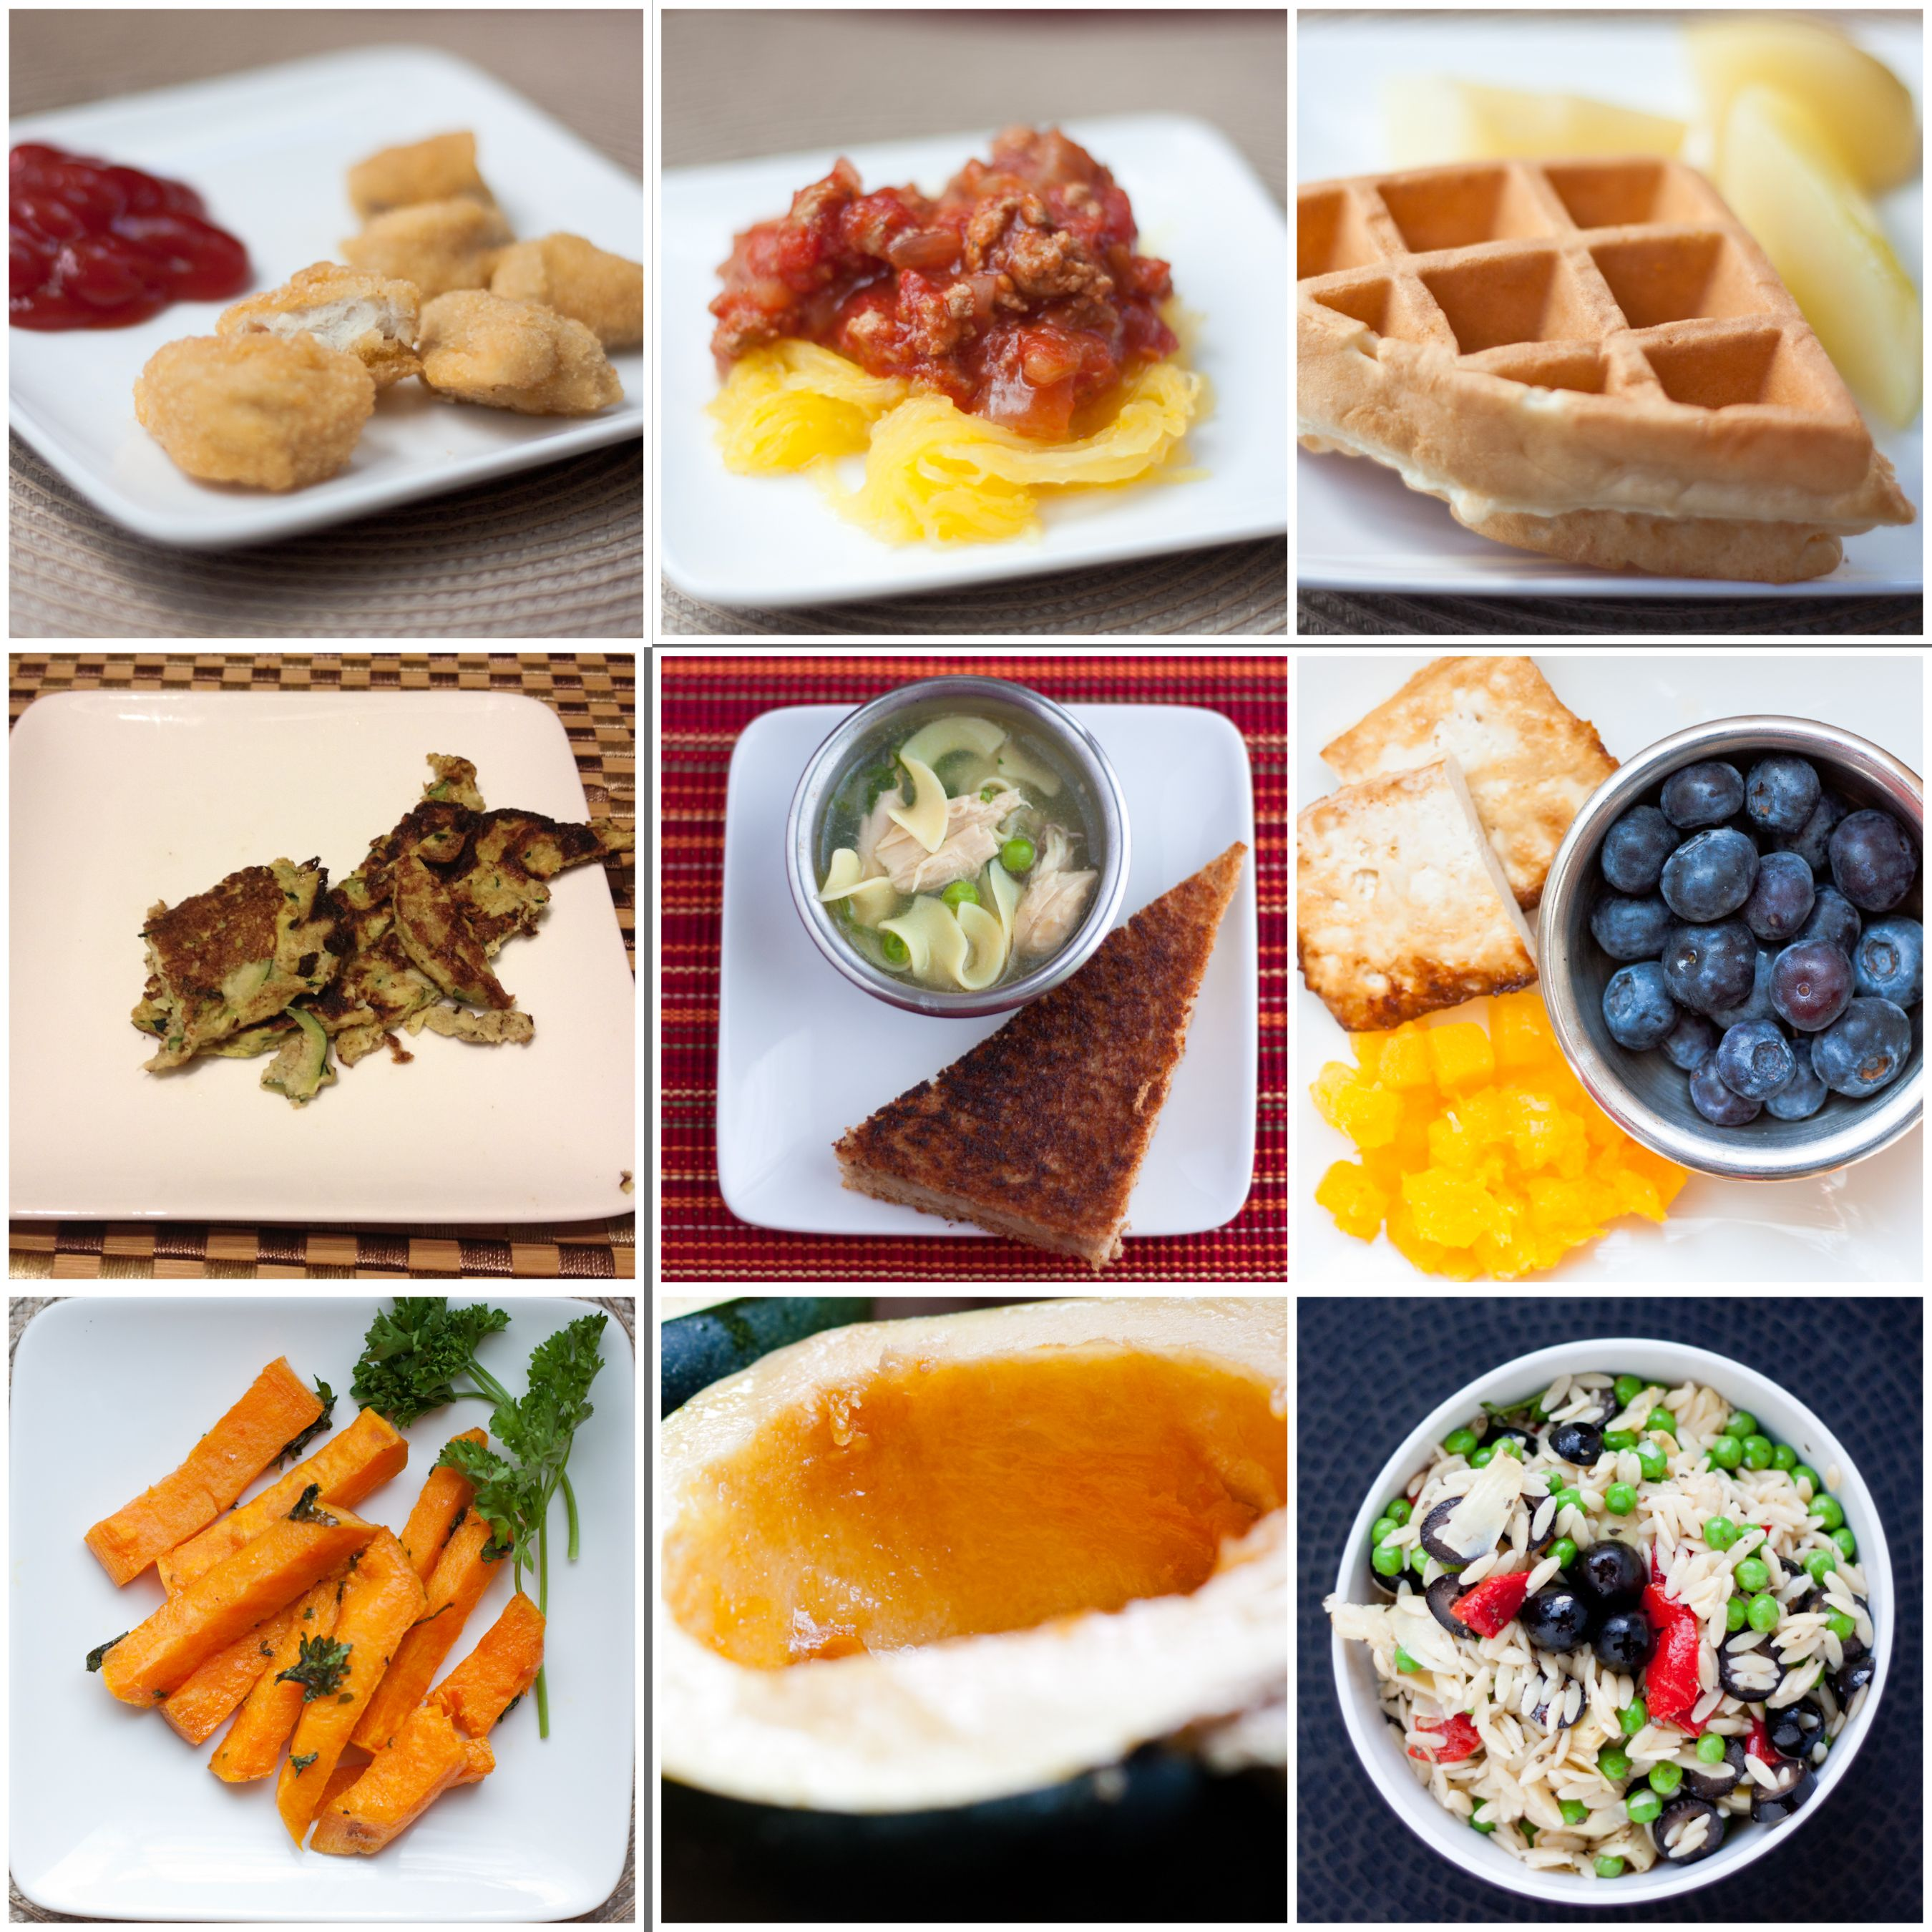 sample weekly meal plan for a 1 year old from livinglikethekings